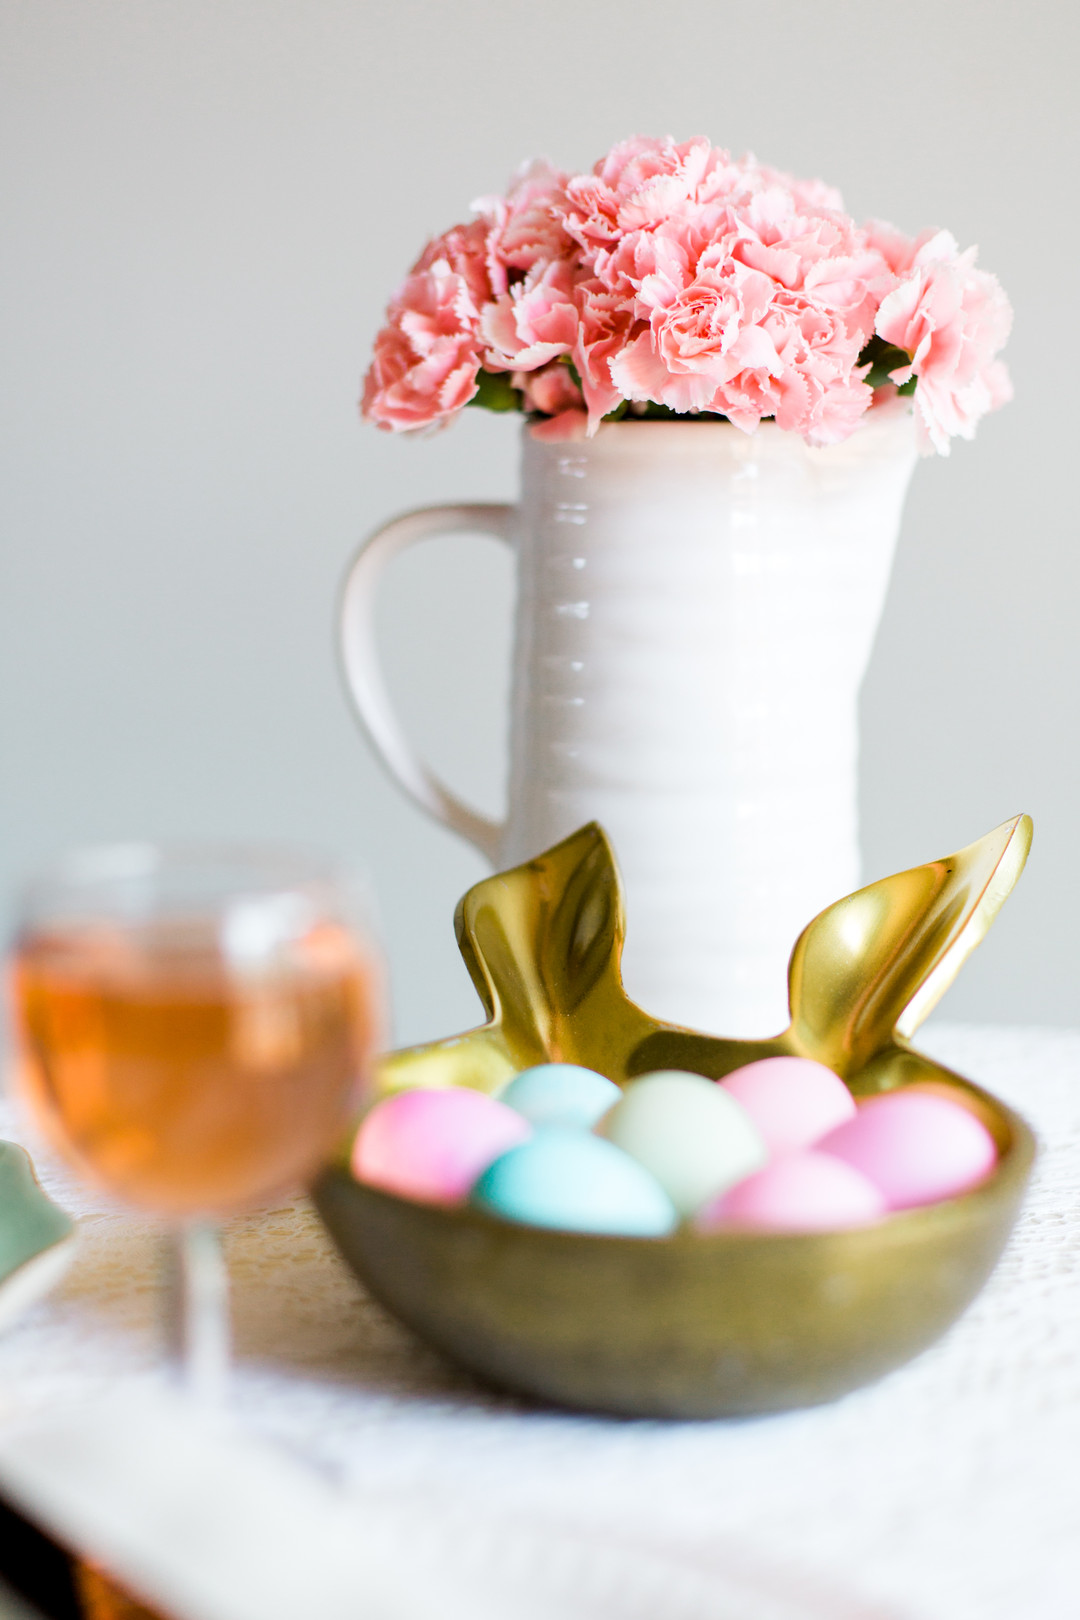 Staal_KristinaStaalPhotography_KristinaStaalPhotographyEasterTablescape20163_big Easy Entertaining: Easter Brunch Inspiration for Two